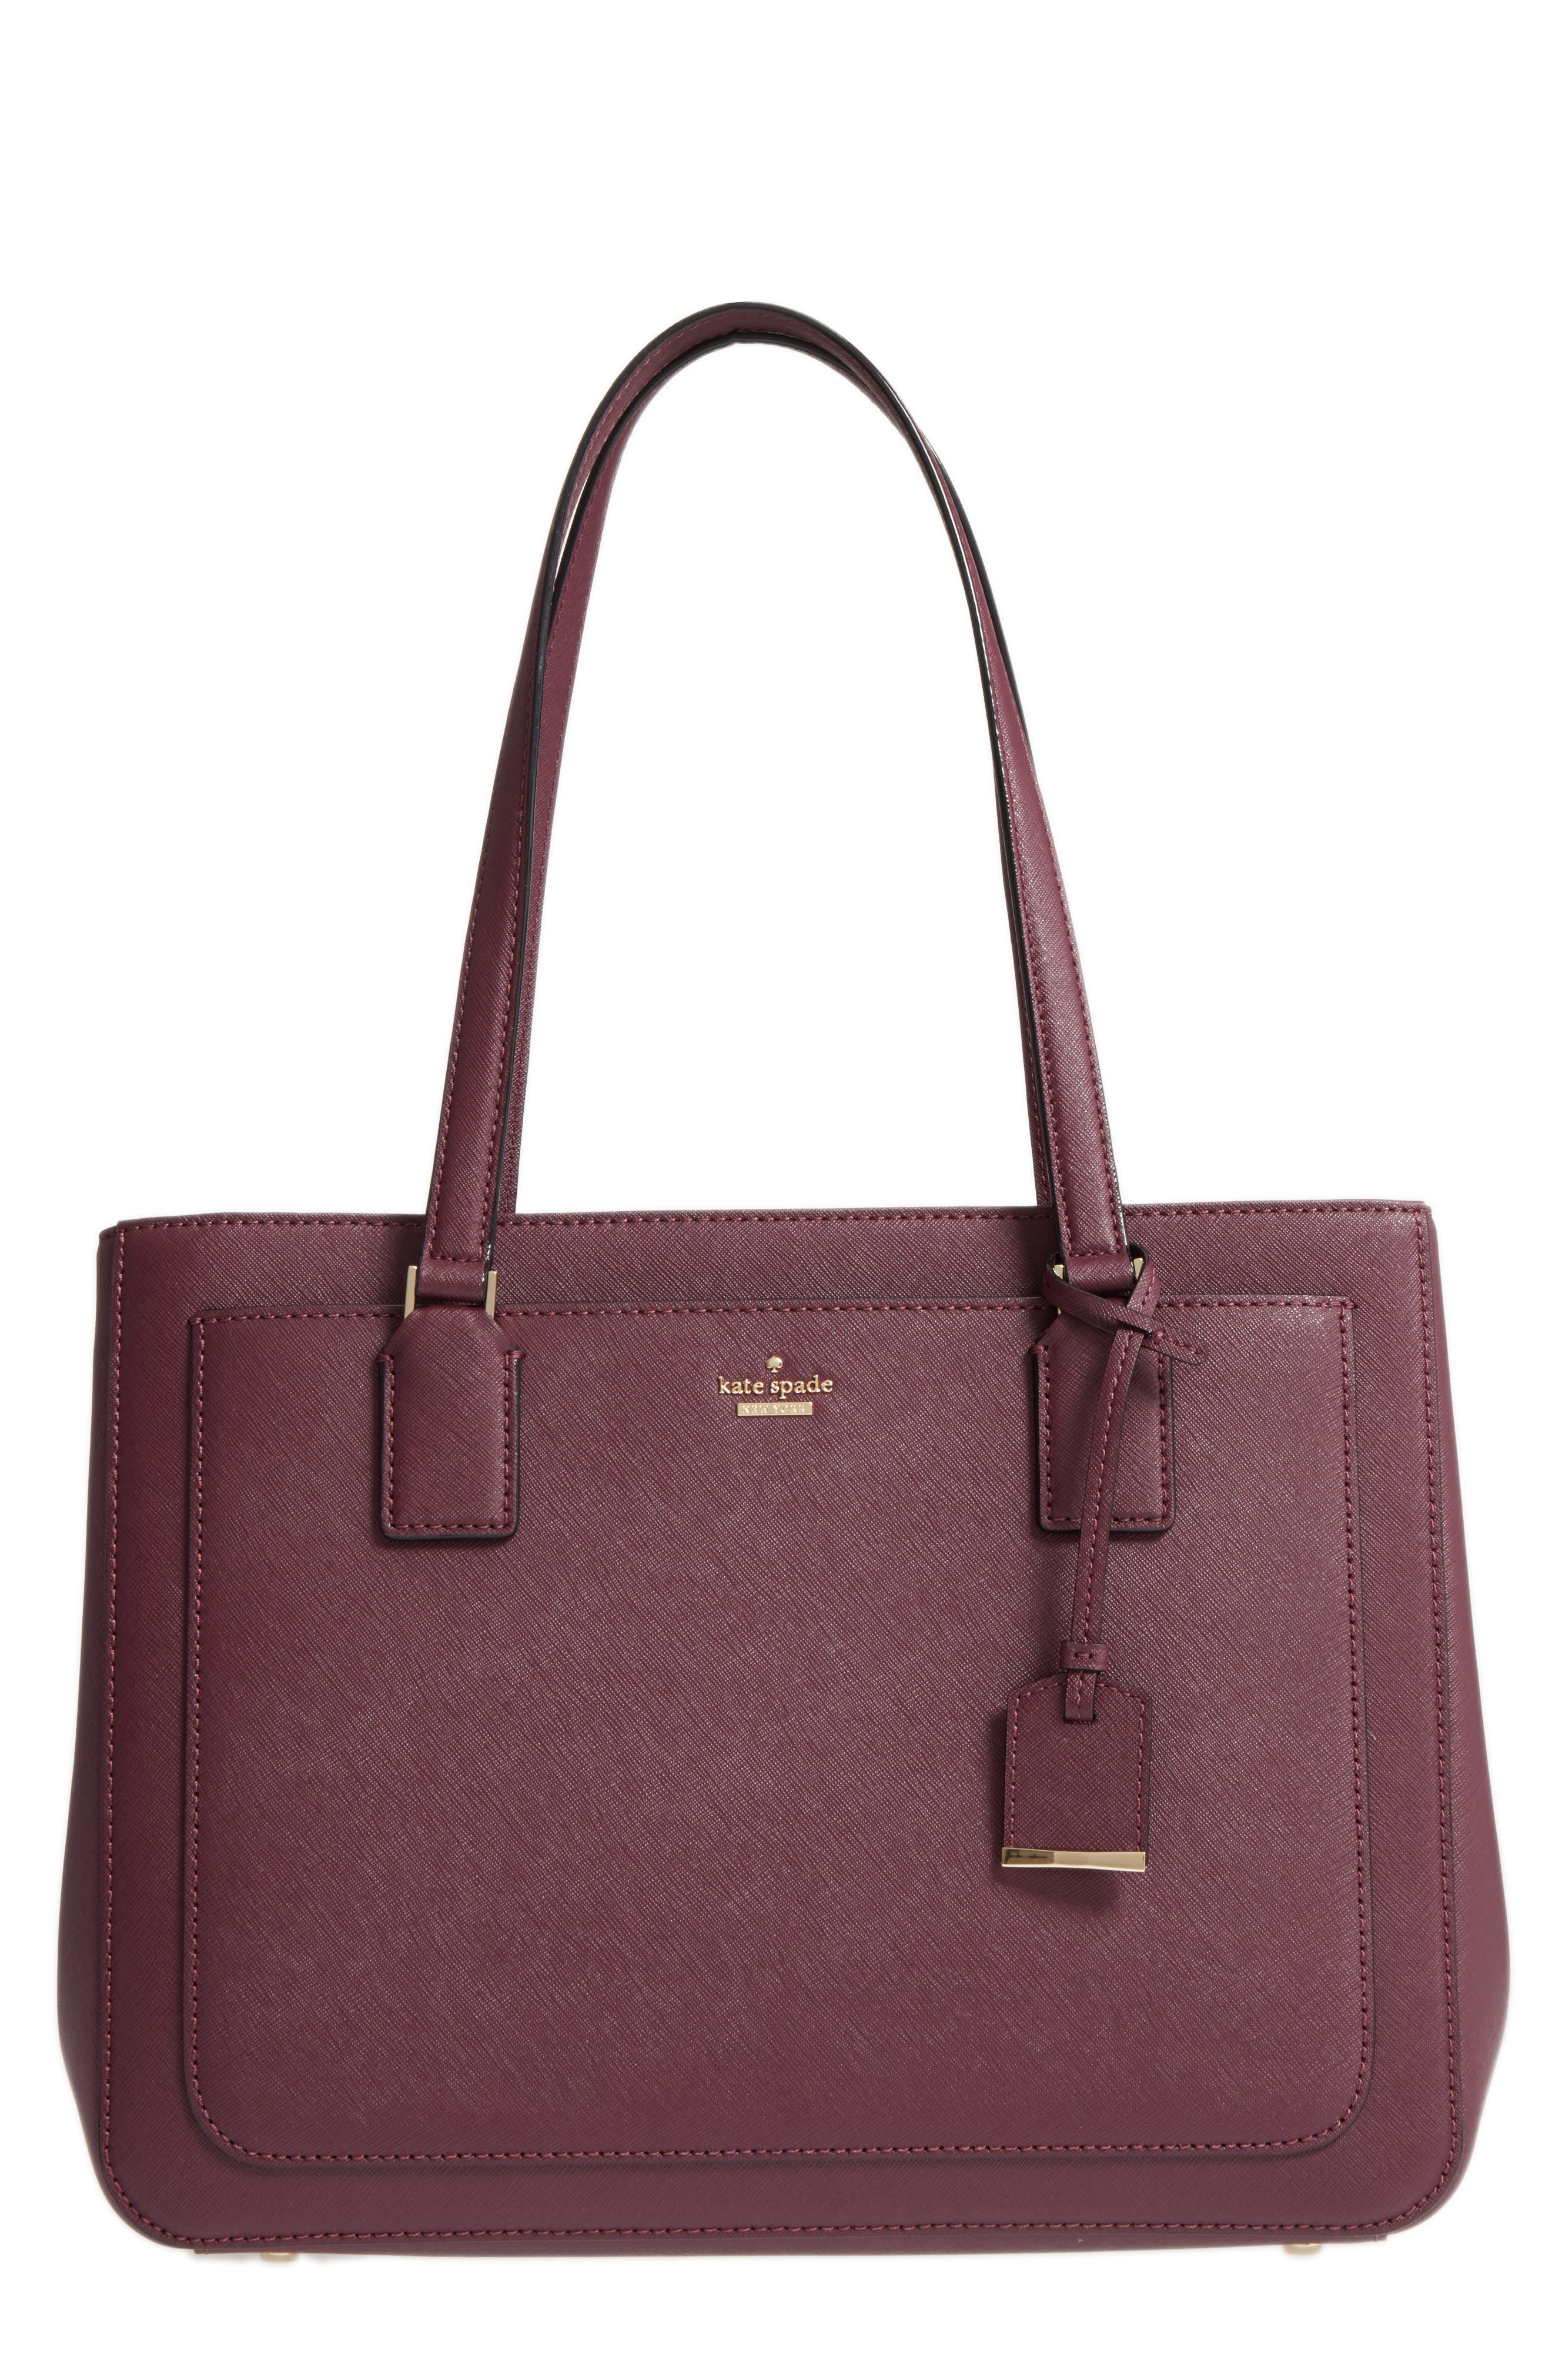 kate spade new york cameron street - zooey leather tote